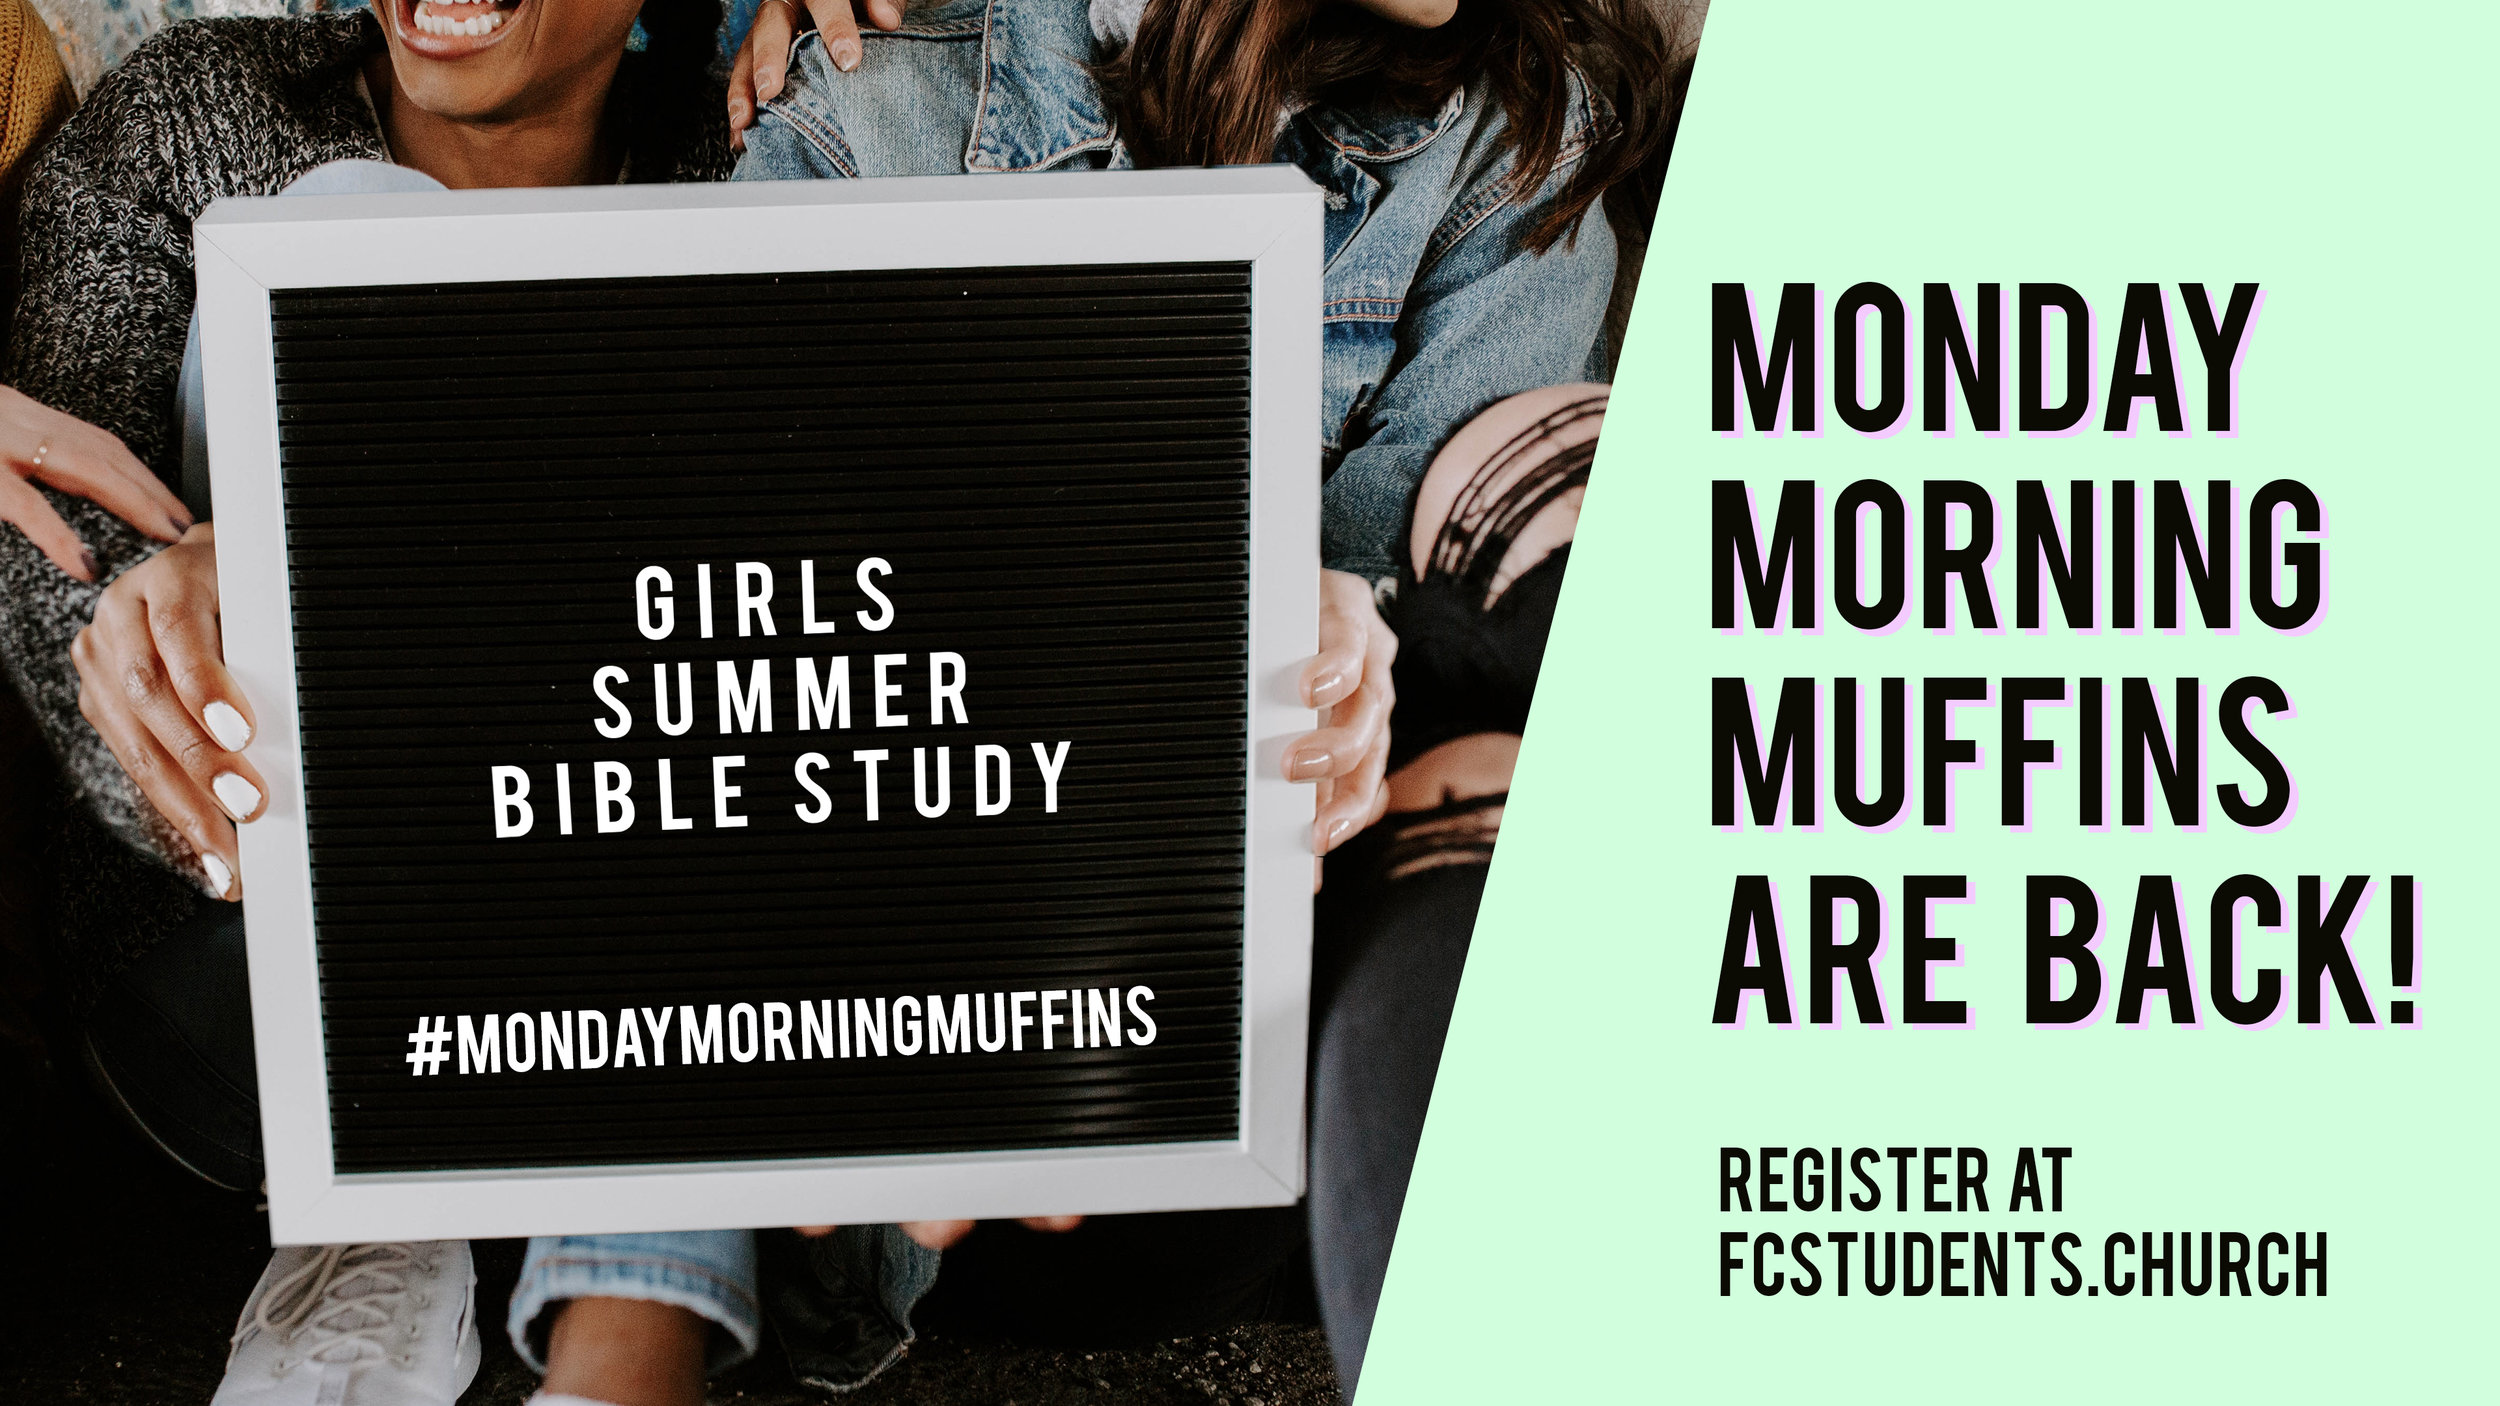 Girls Summer Bible Study!! - Join a group of girls seeking to grow closer to the Lord this summer, while eating some muffins along the way.